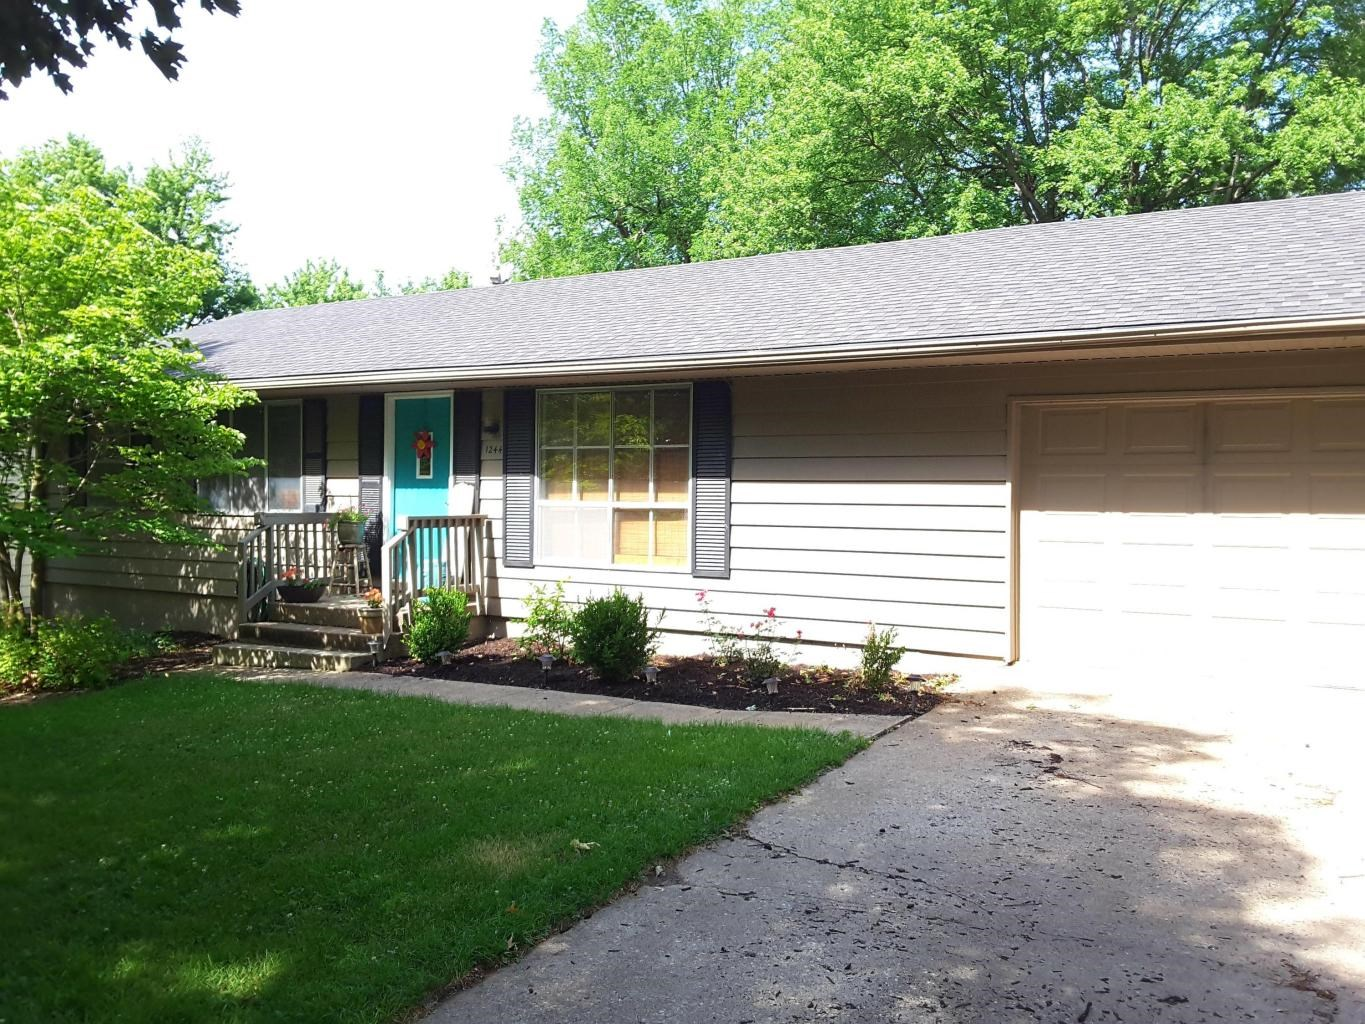 3 BEDROOM, 2 BATH HOME IN MARYVILLE, MISSOURI